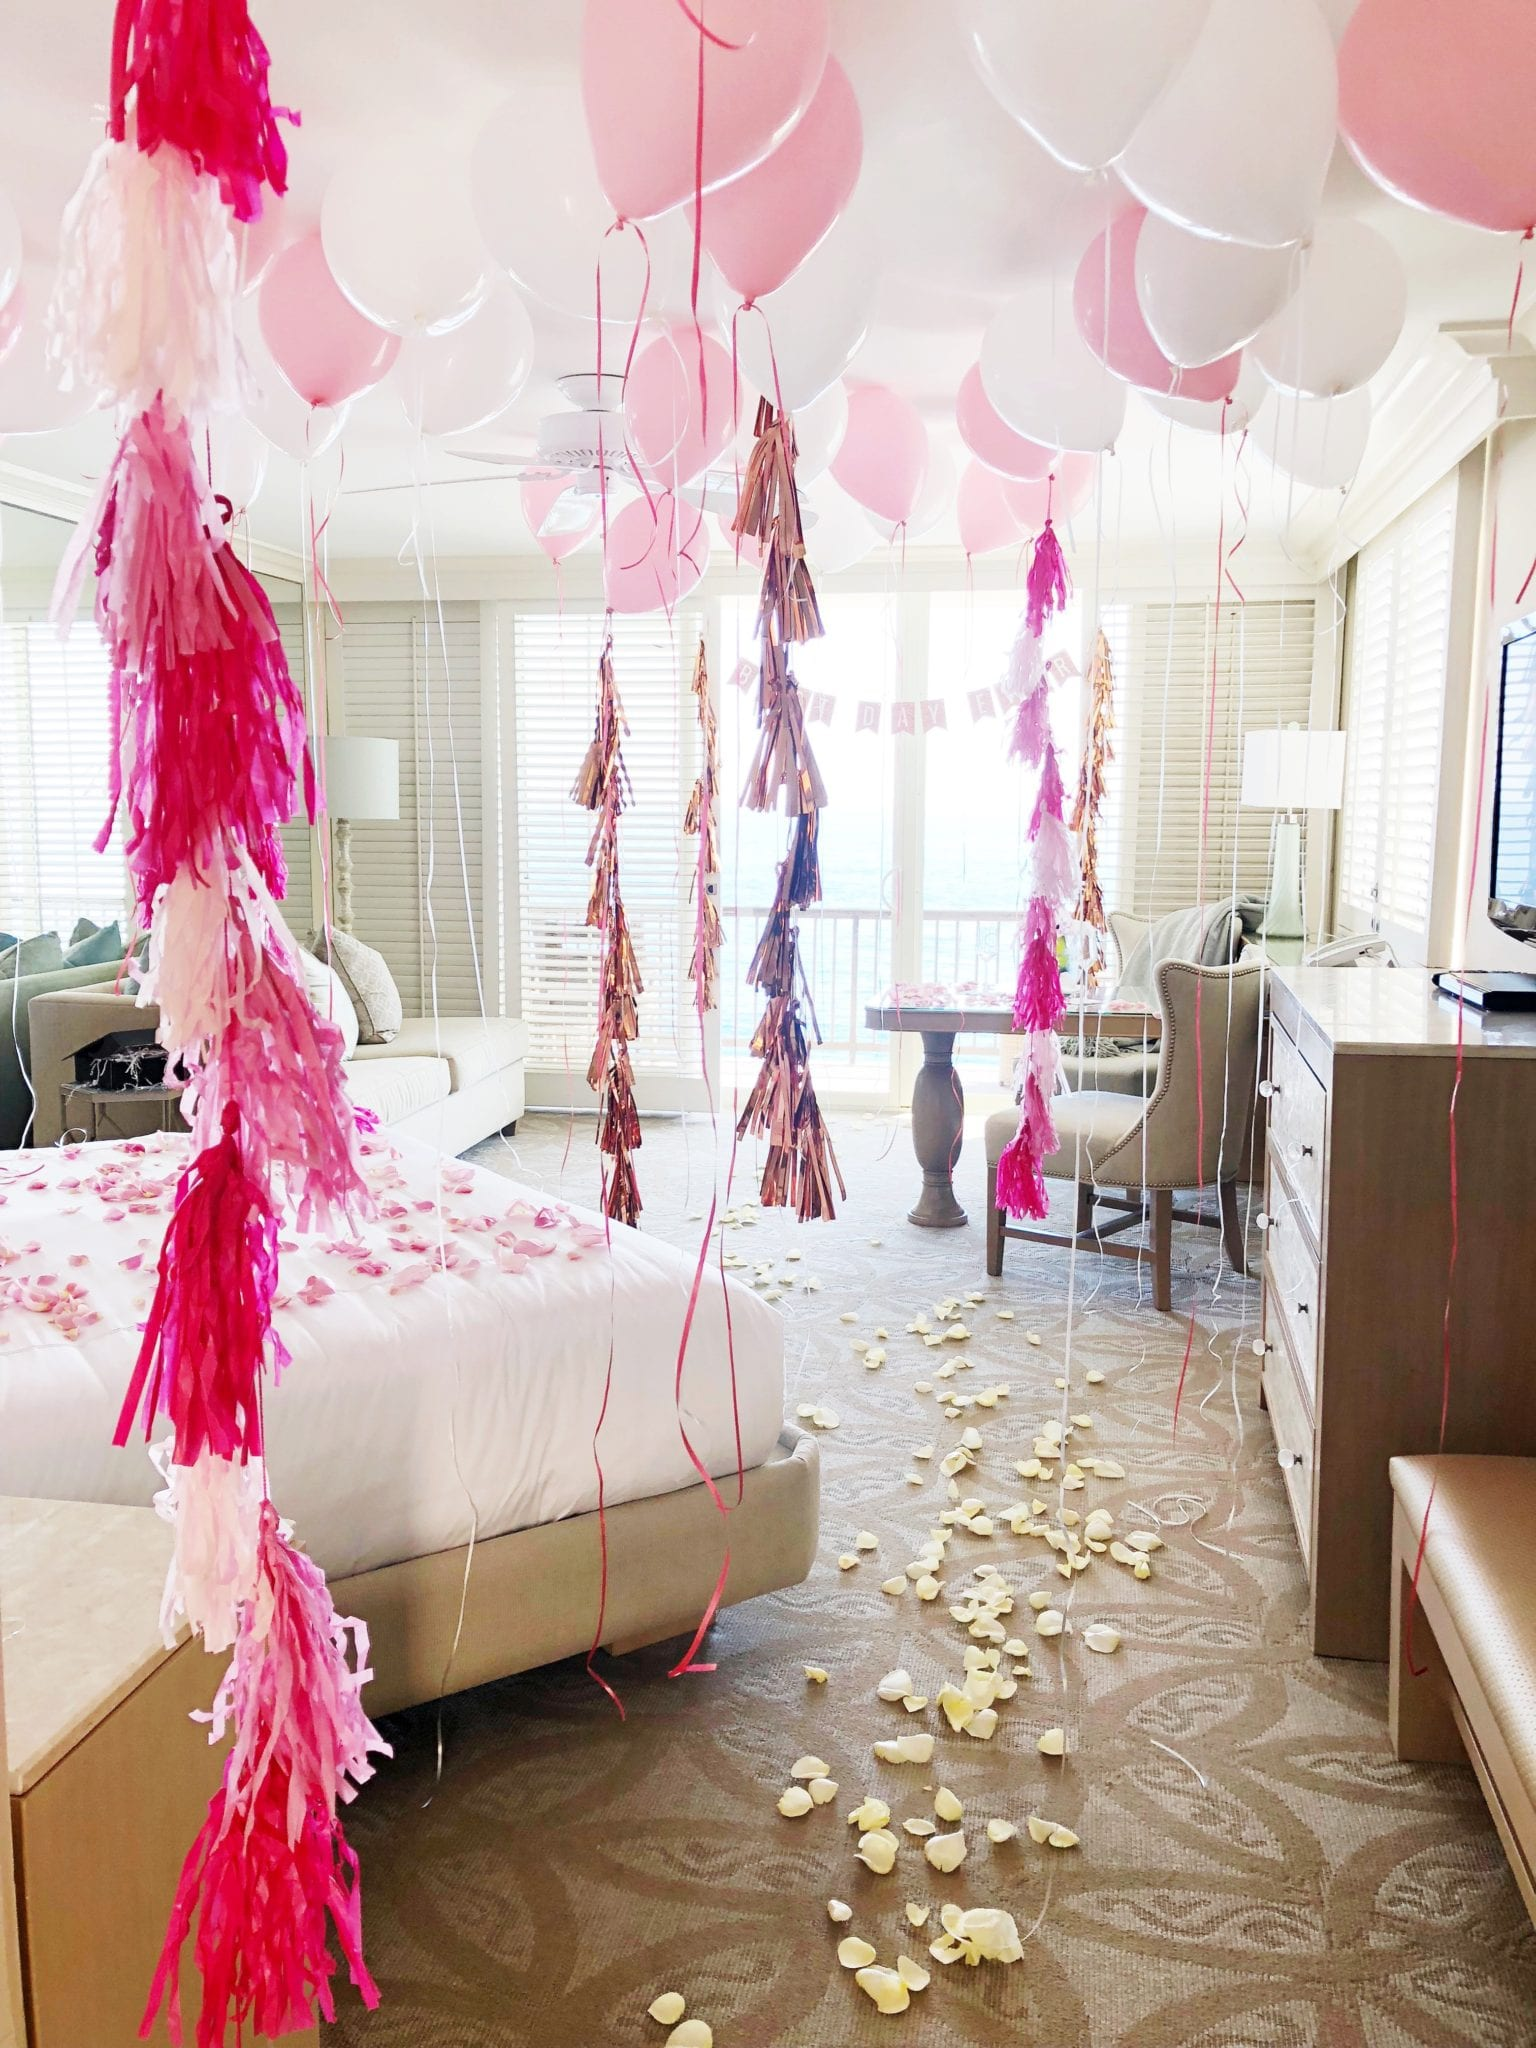 Hotel Room Decor: Special Occasion Hotel Room Decorating Package